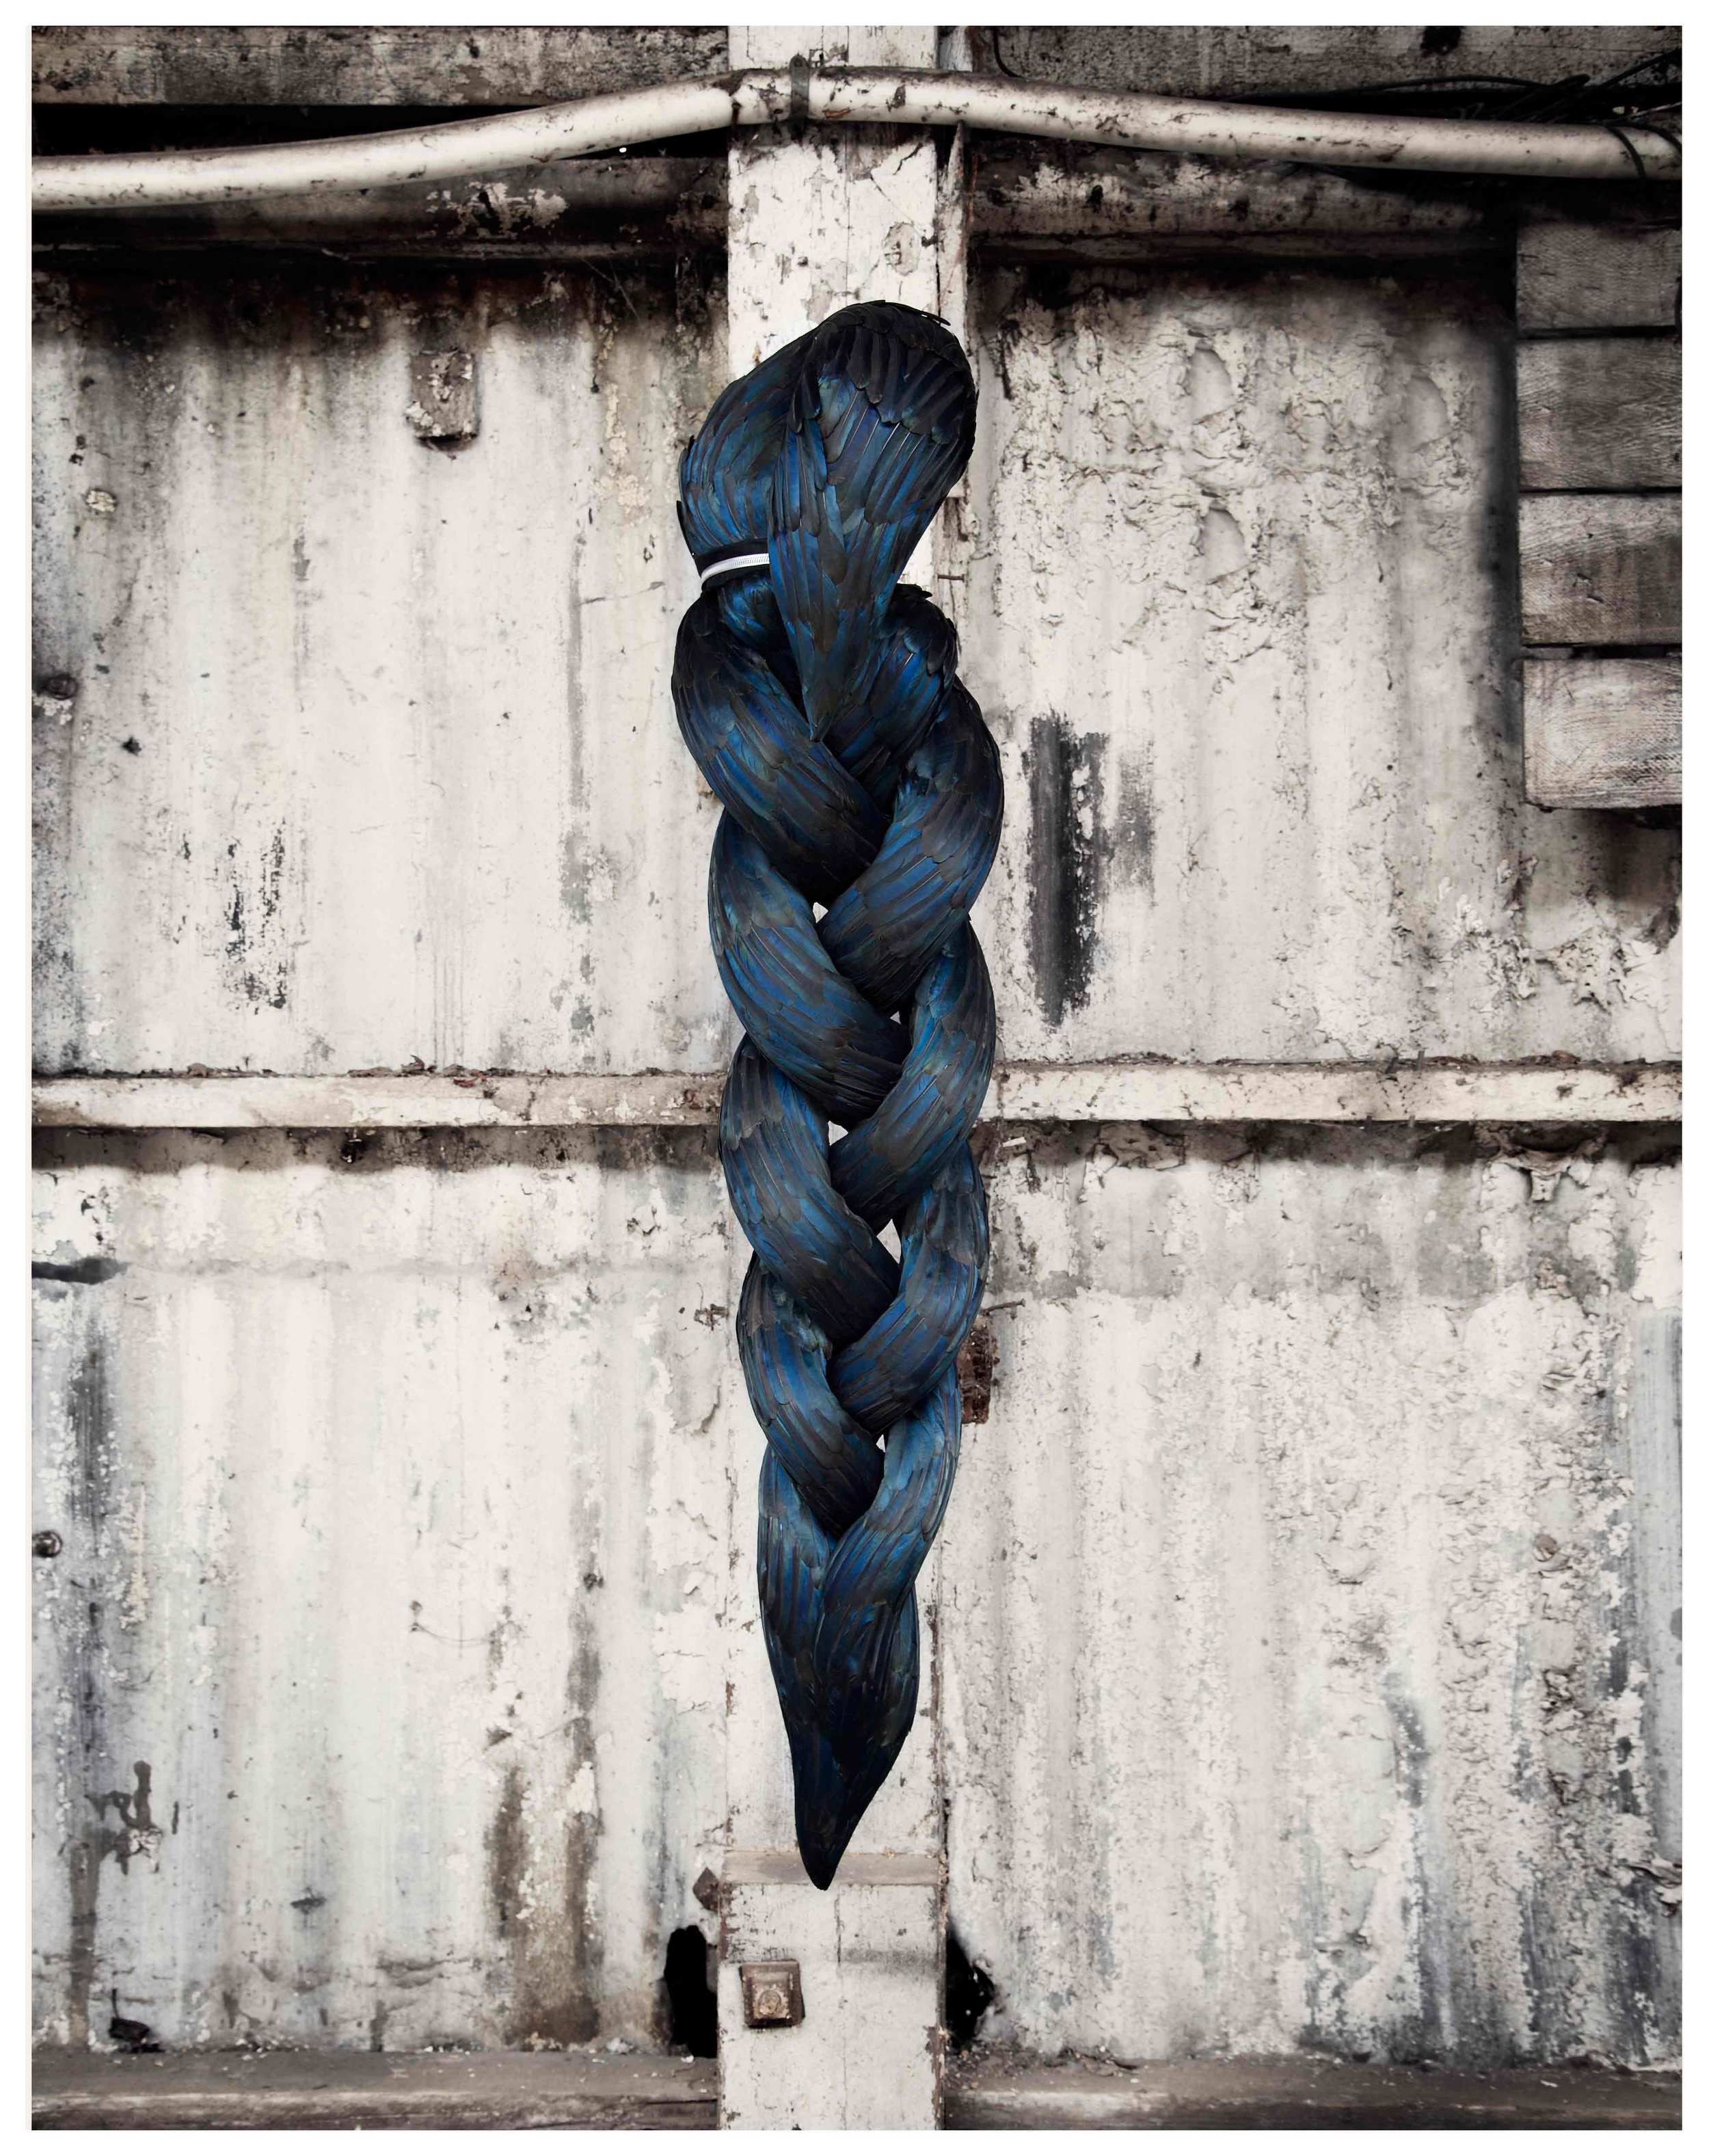 Splice, 2012, Kate MccGwire